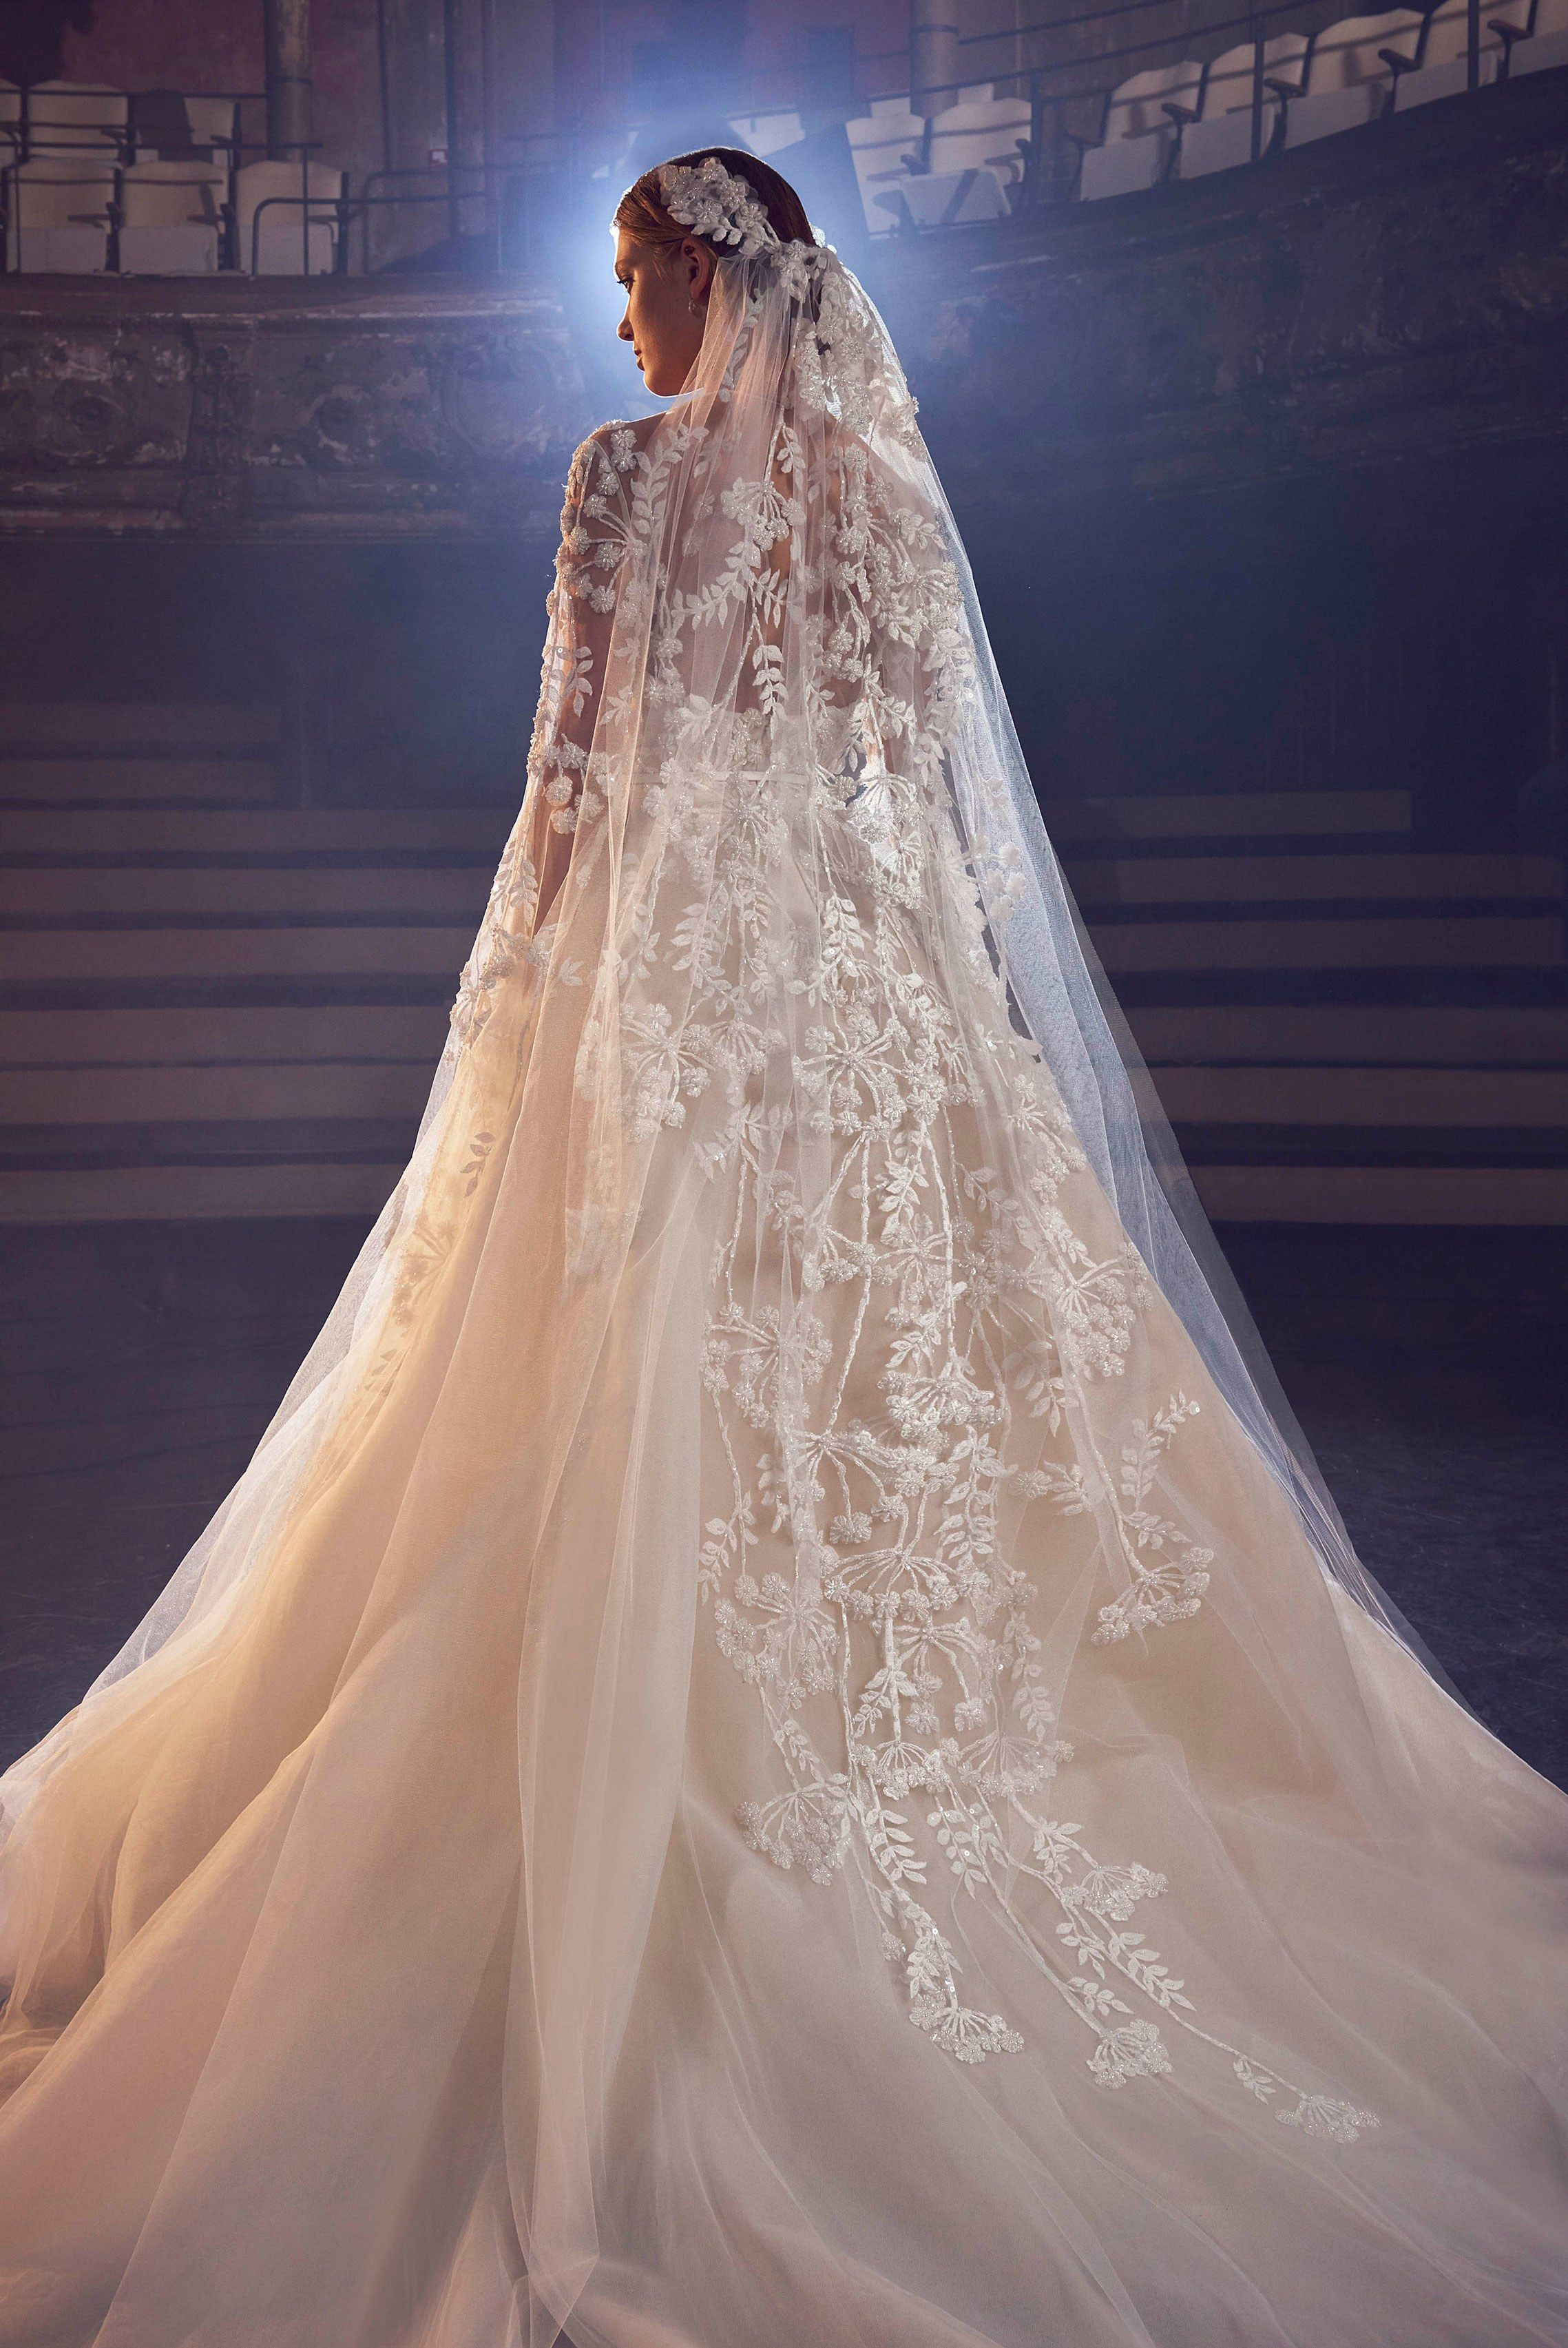 Elie Saab Bridal Fall 2018 Fashion Show | Elie saab bridal, Wedding ...